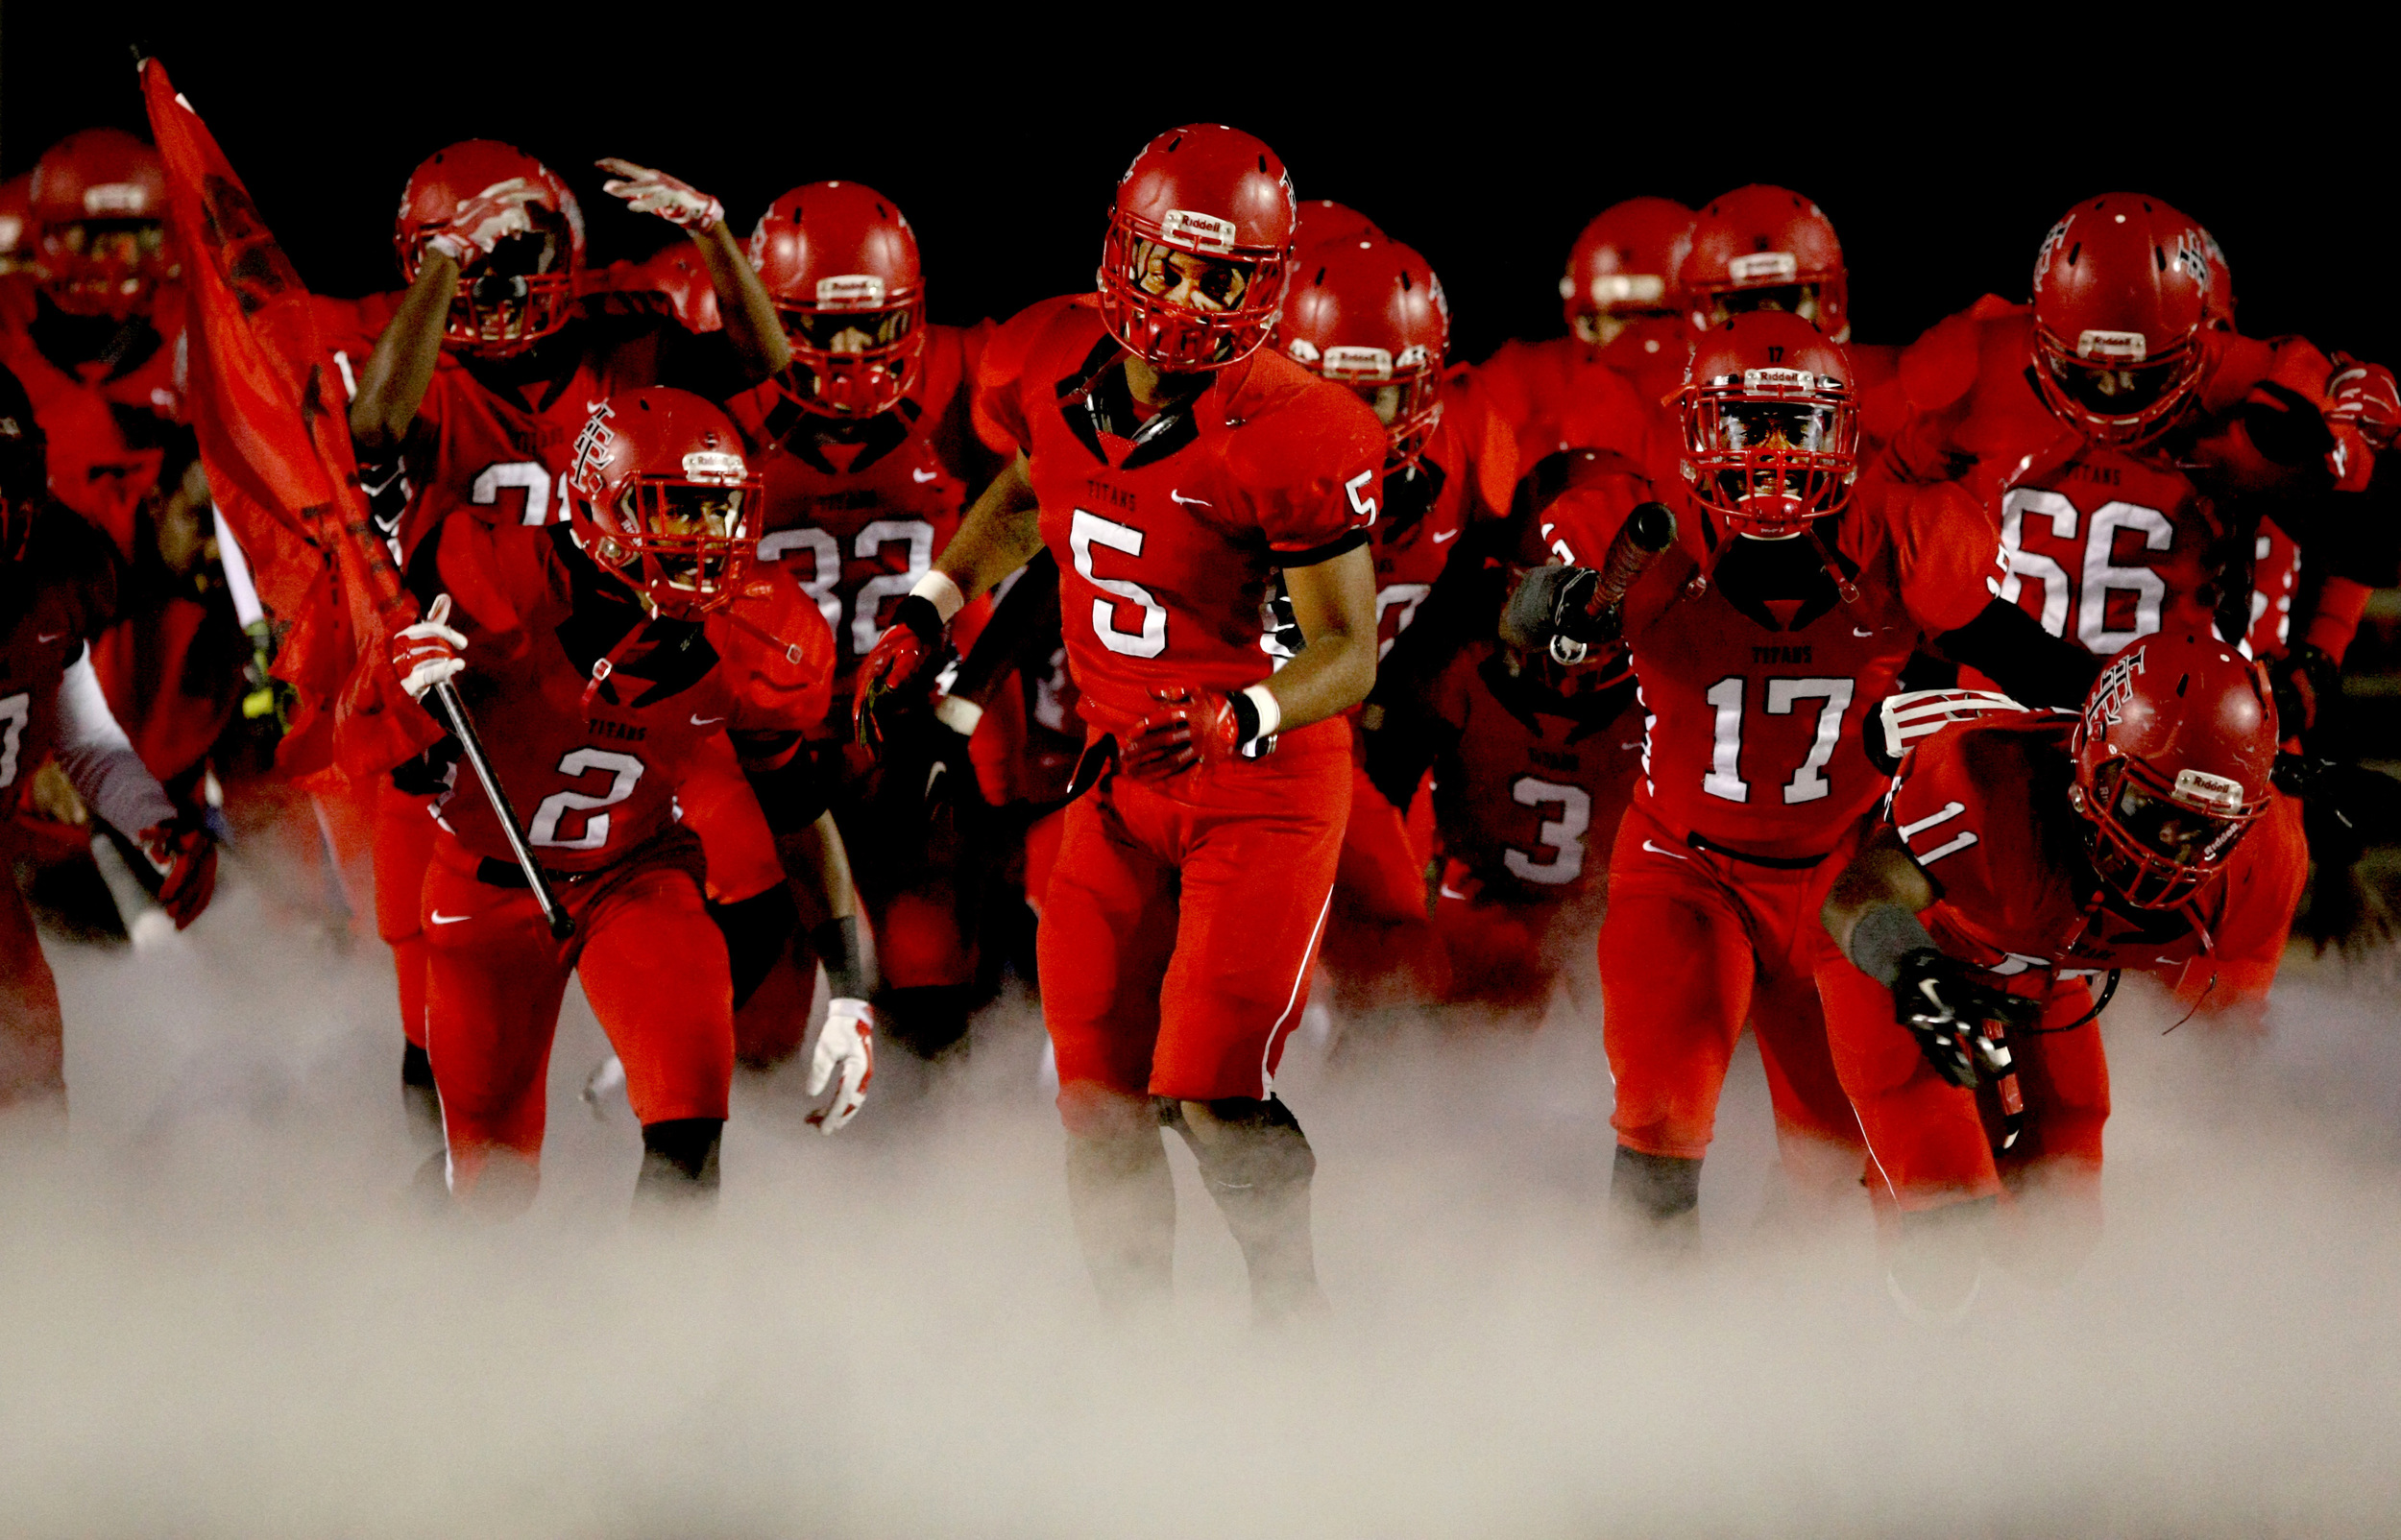 Lake Taylor's Marquis Poole, center, leads the Titans onto the filed prior to the start of their game against Monacan.